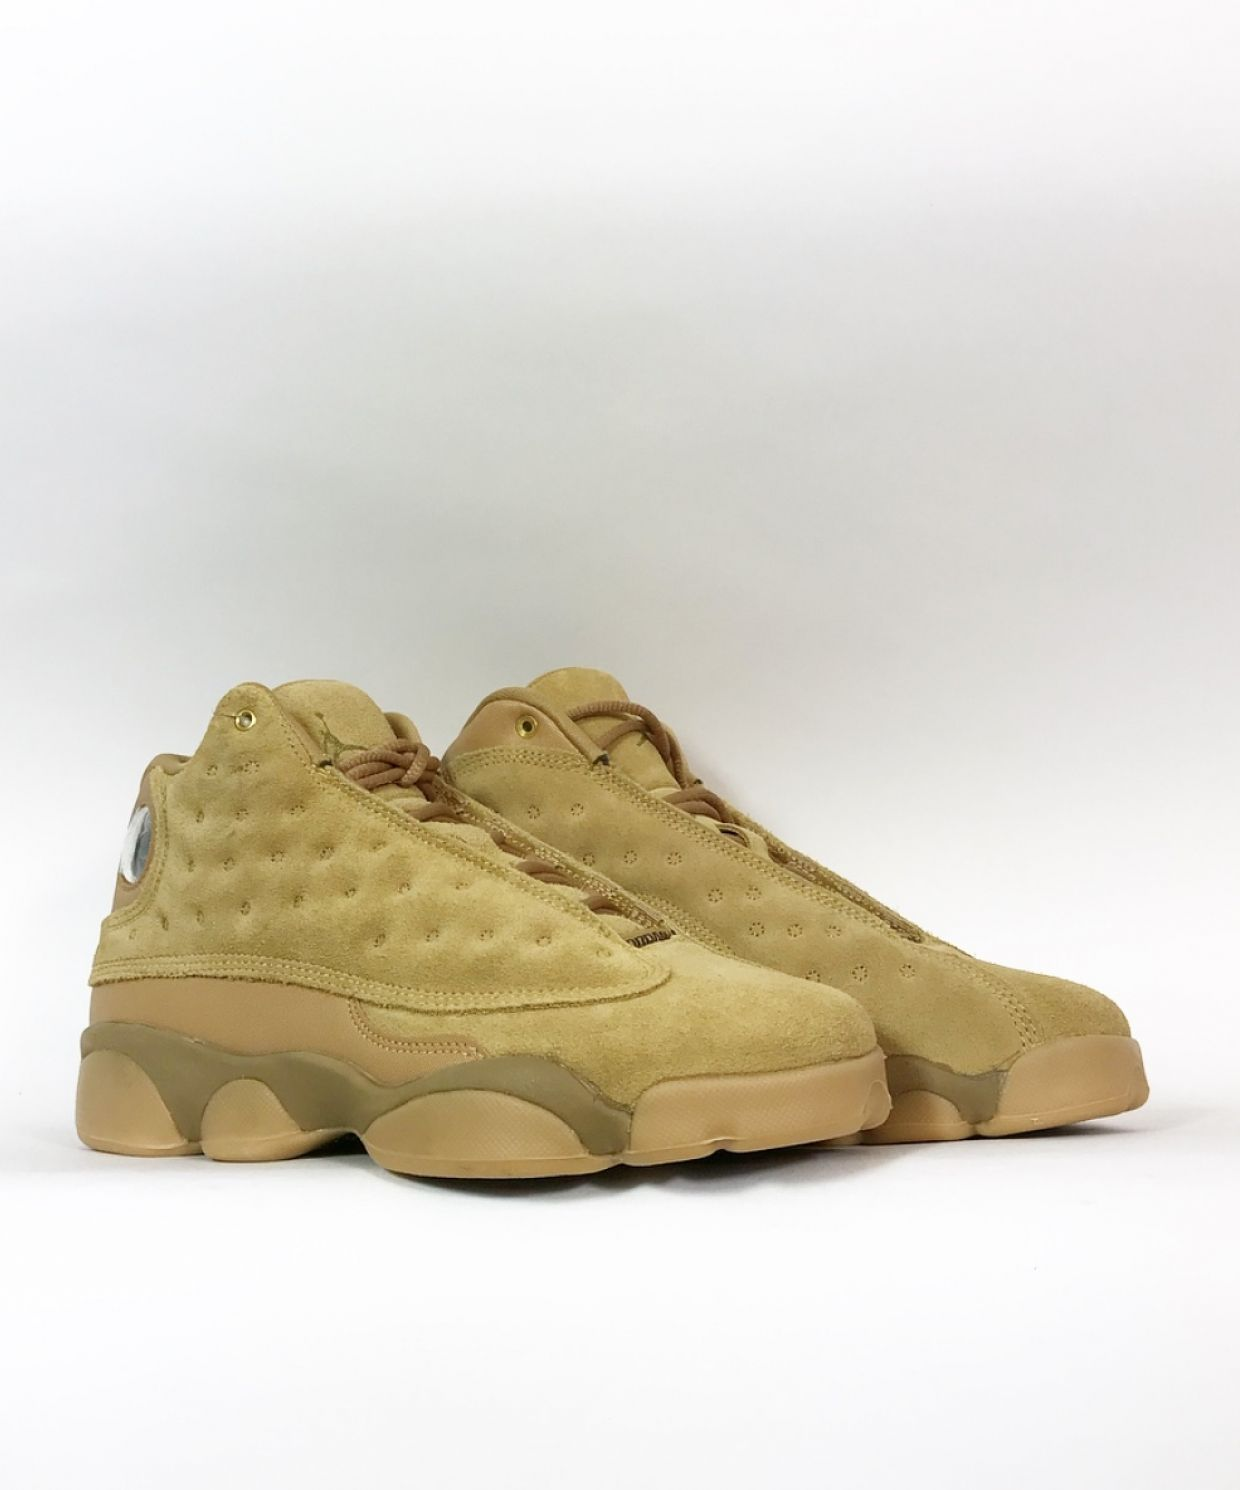 new styles 53e96 54a5b Nike Air Jordan 13 Retro Bg